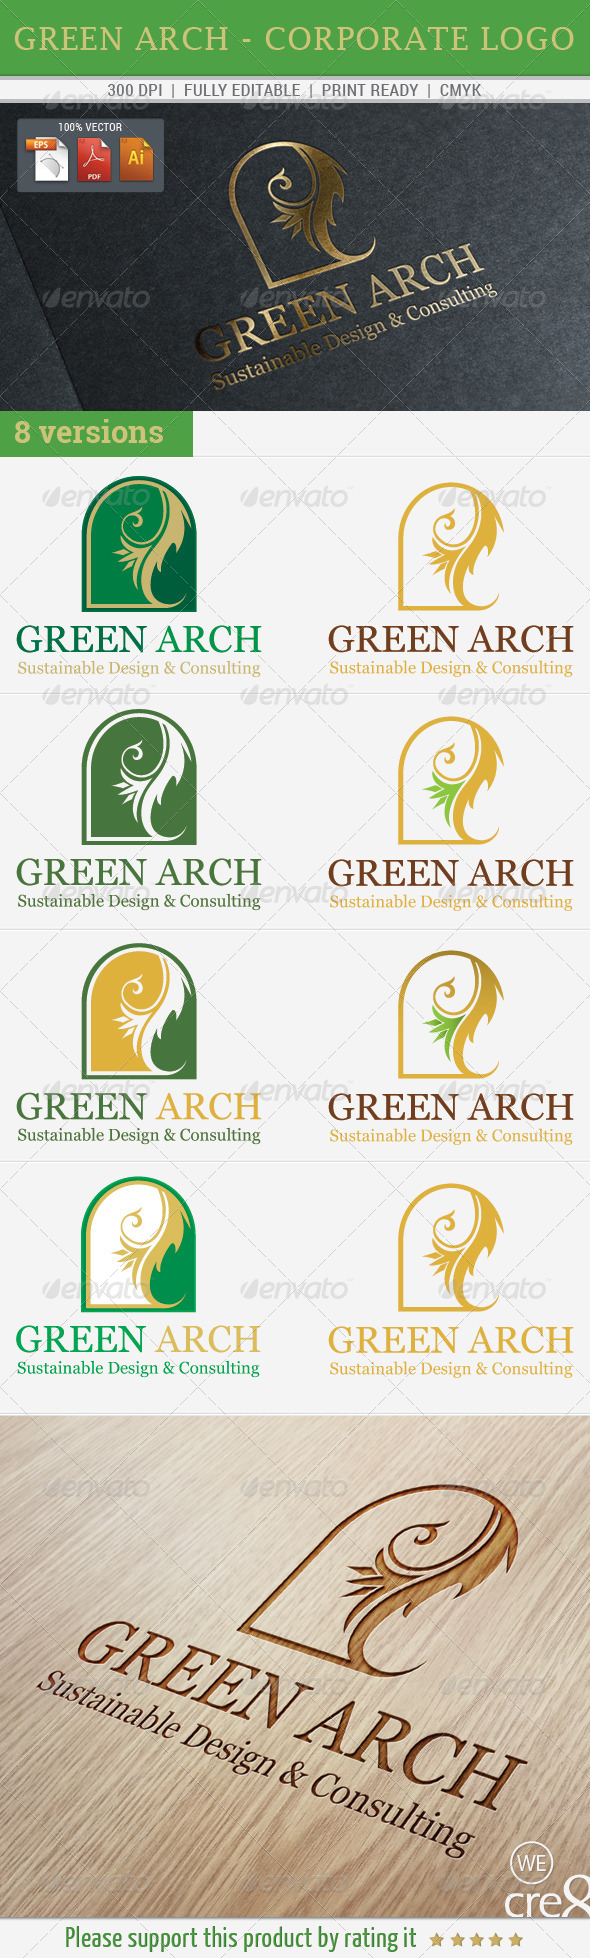 Green Arch Corporate Logo